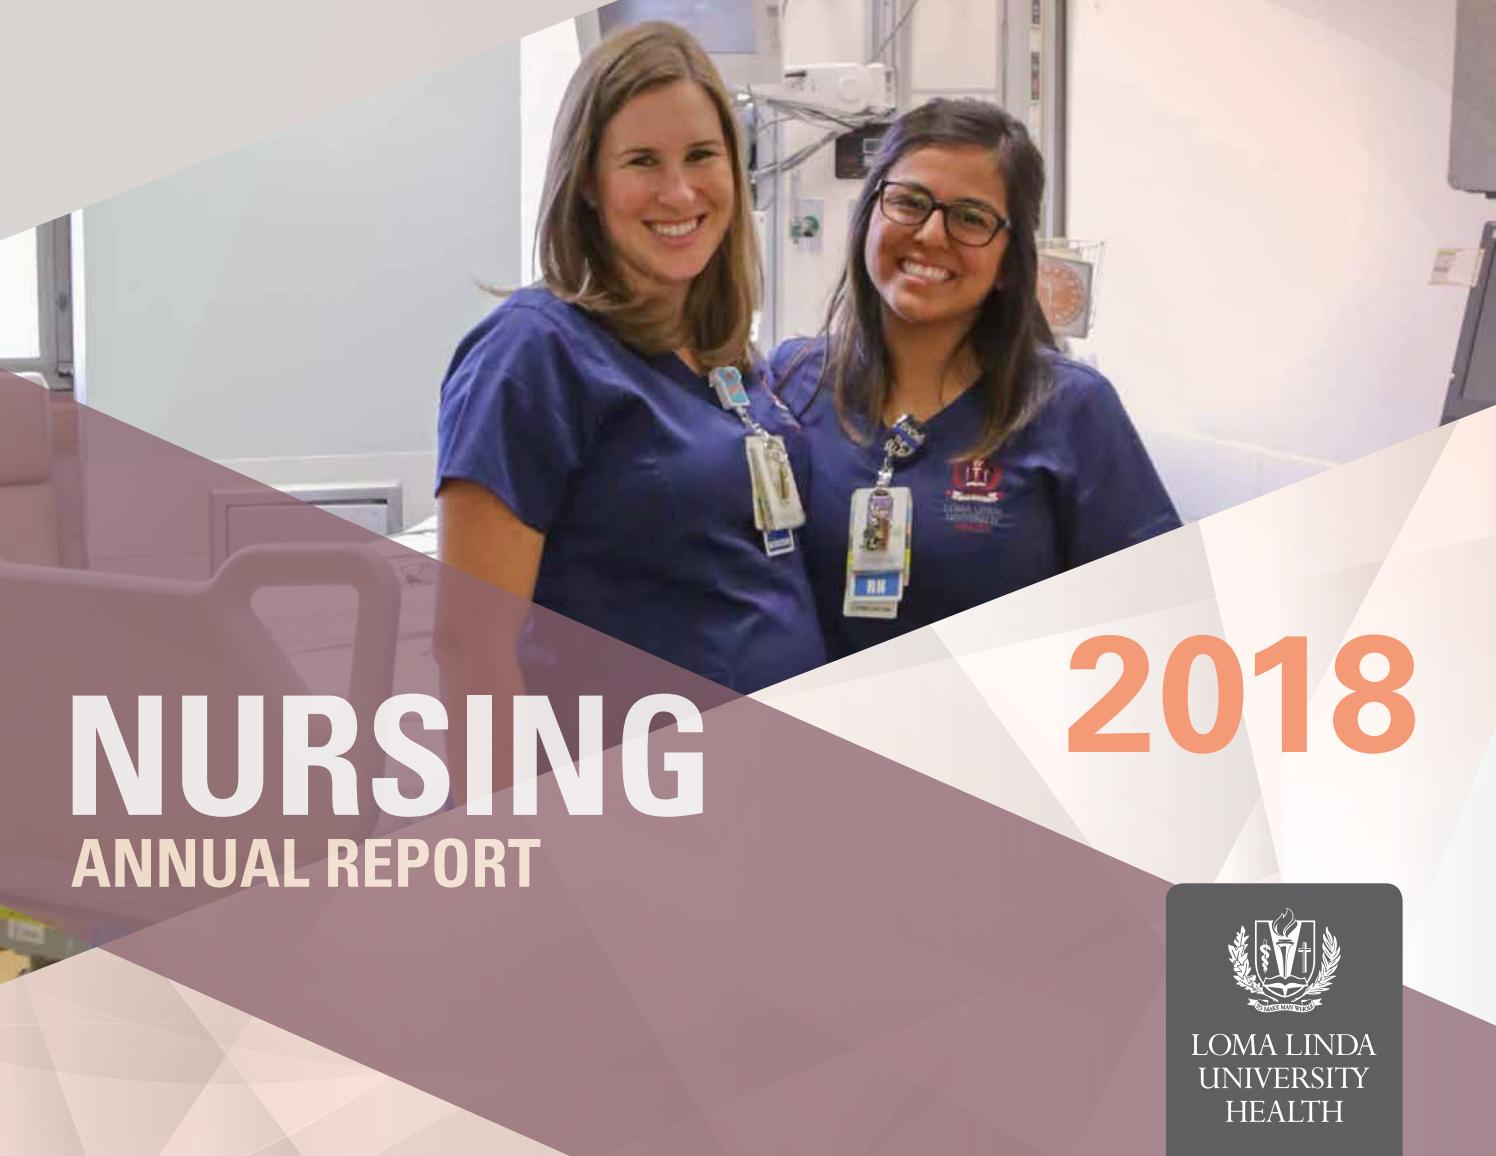 Nursing Annual Report MC-18 by Loma Linda University Health